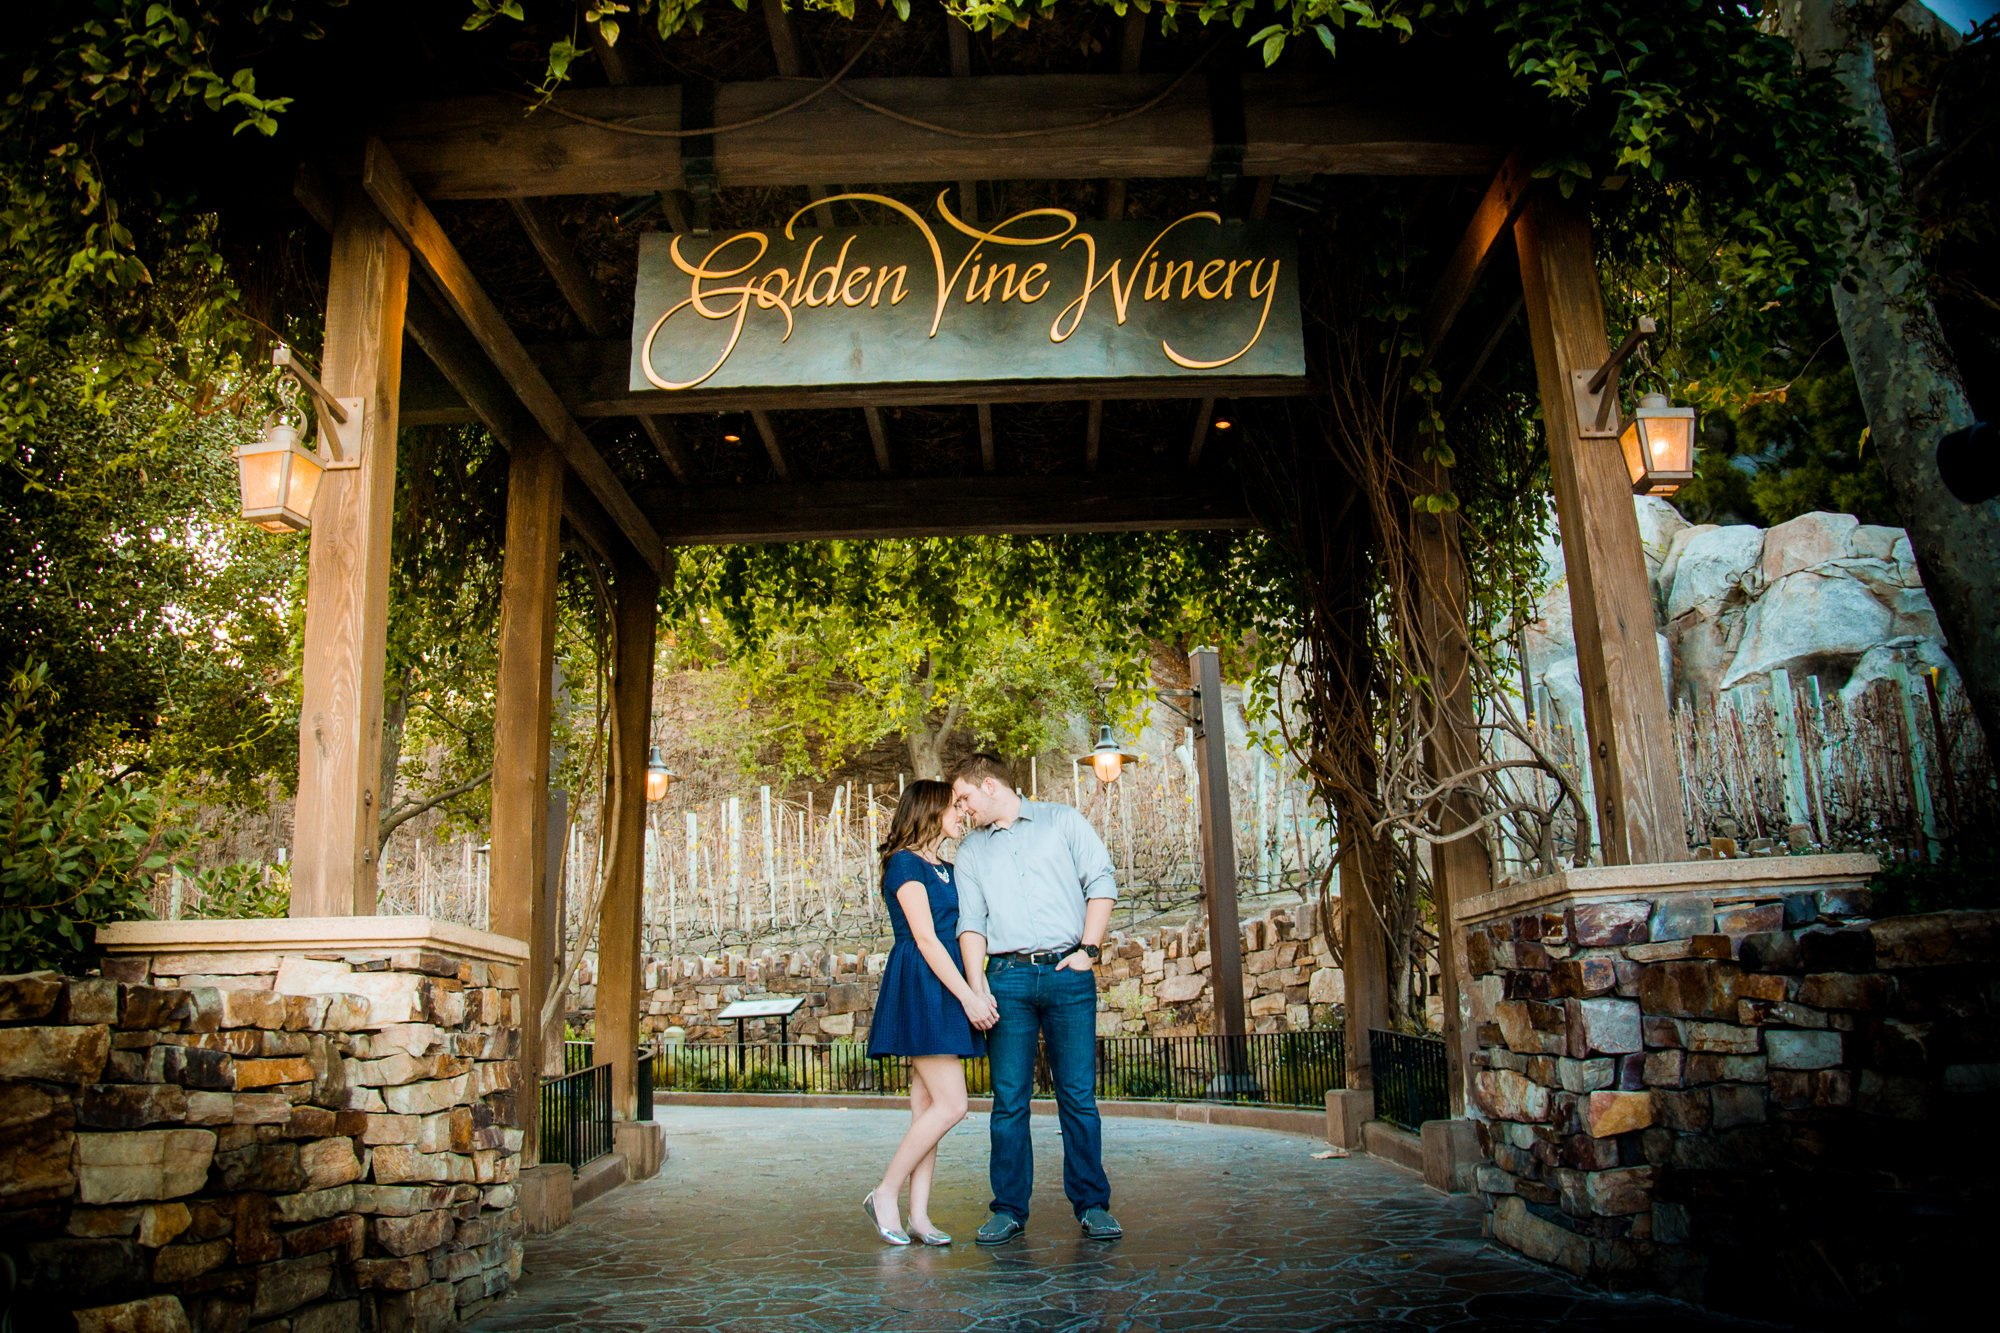 Mehlberg couple in front of Golden Wine Winery